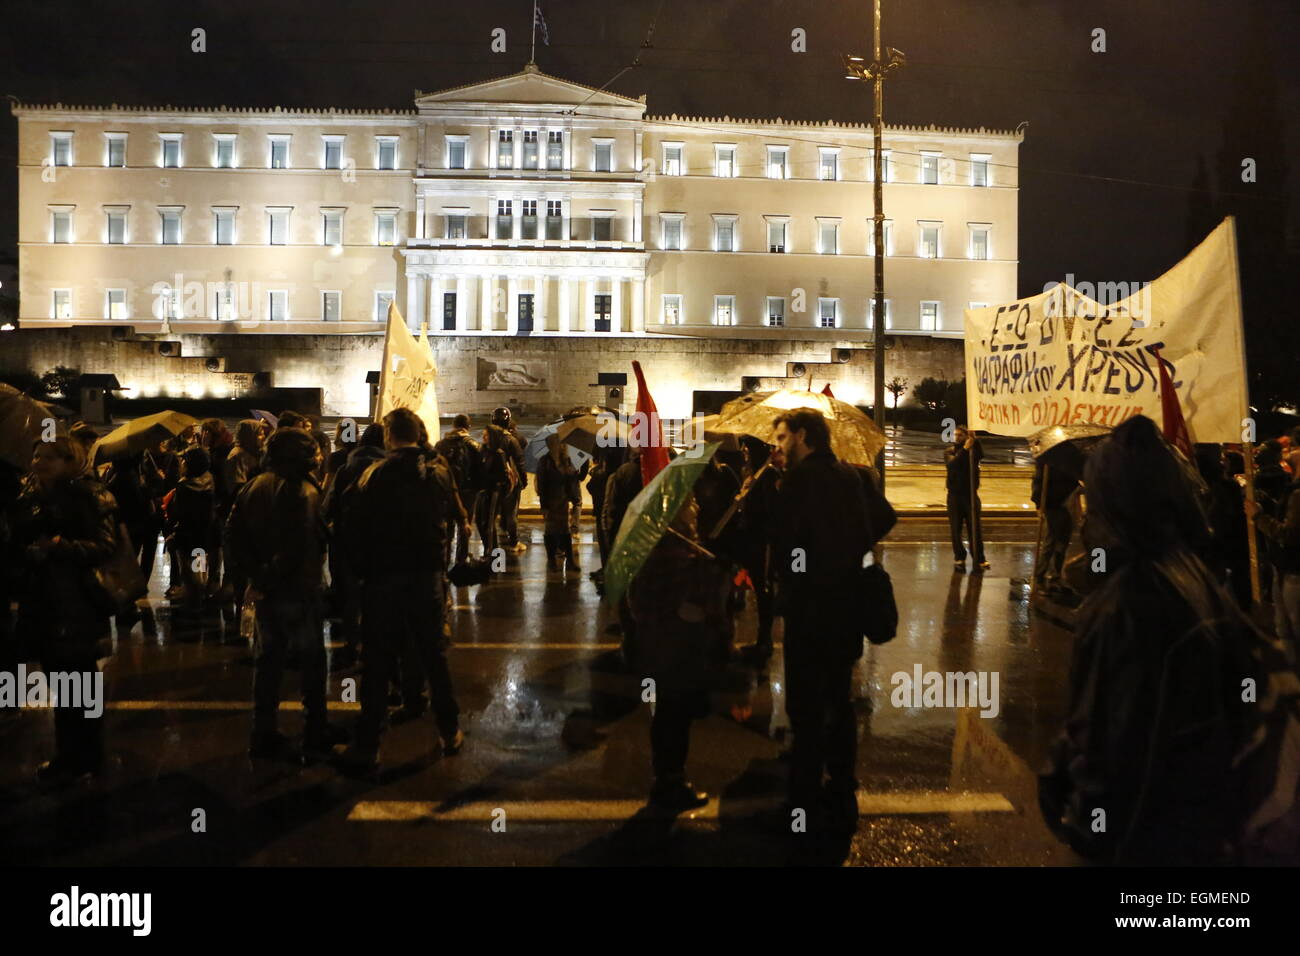 The protesters stand outside the Greek Parliament. Greeks from the left party ANTARSYA (Front of the Greek Anticapitalist - Stock Image